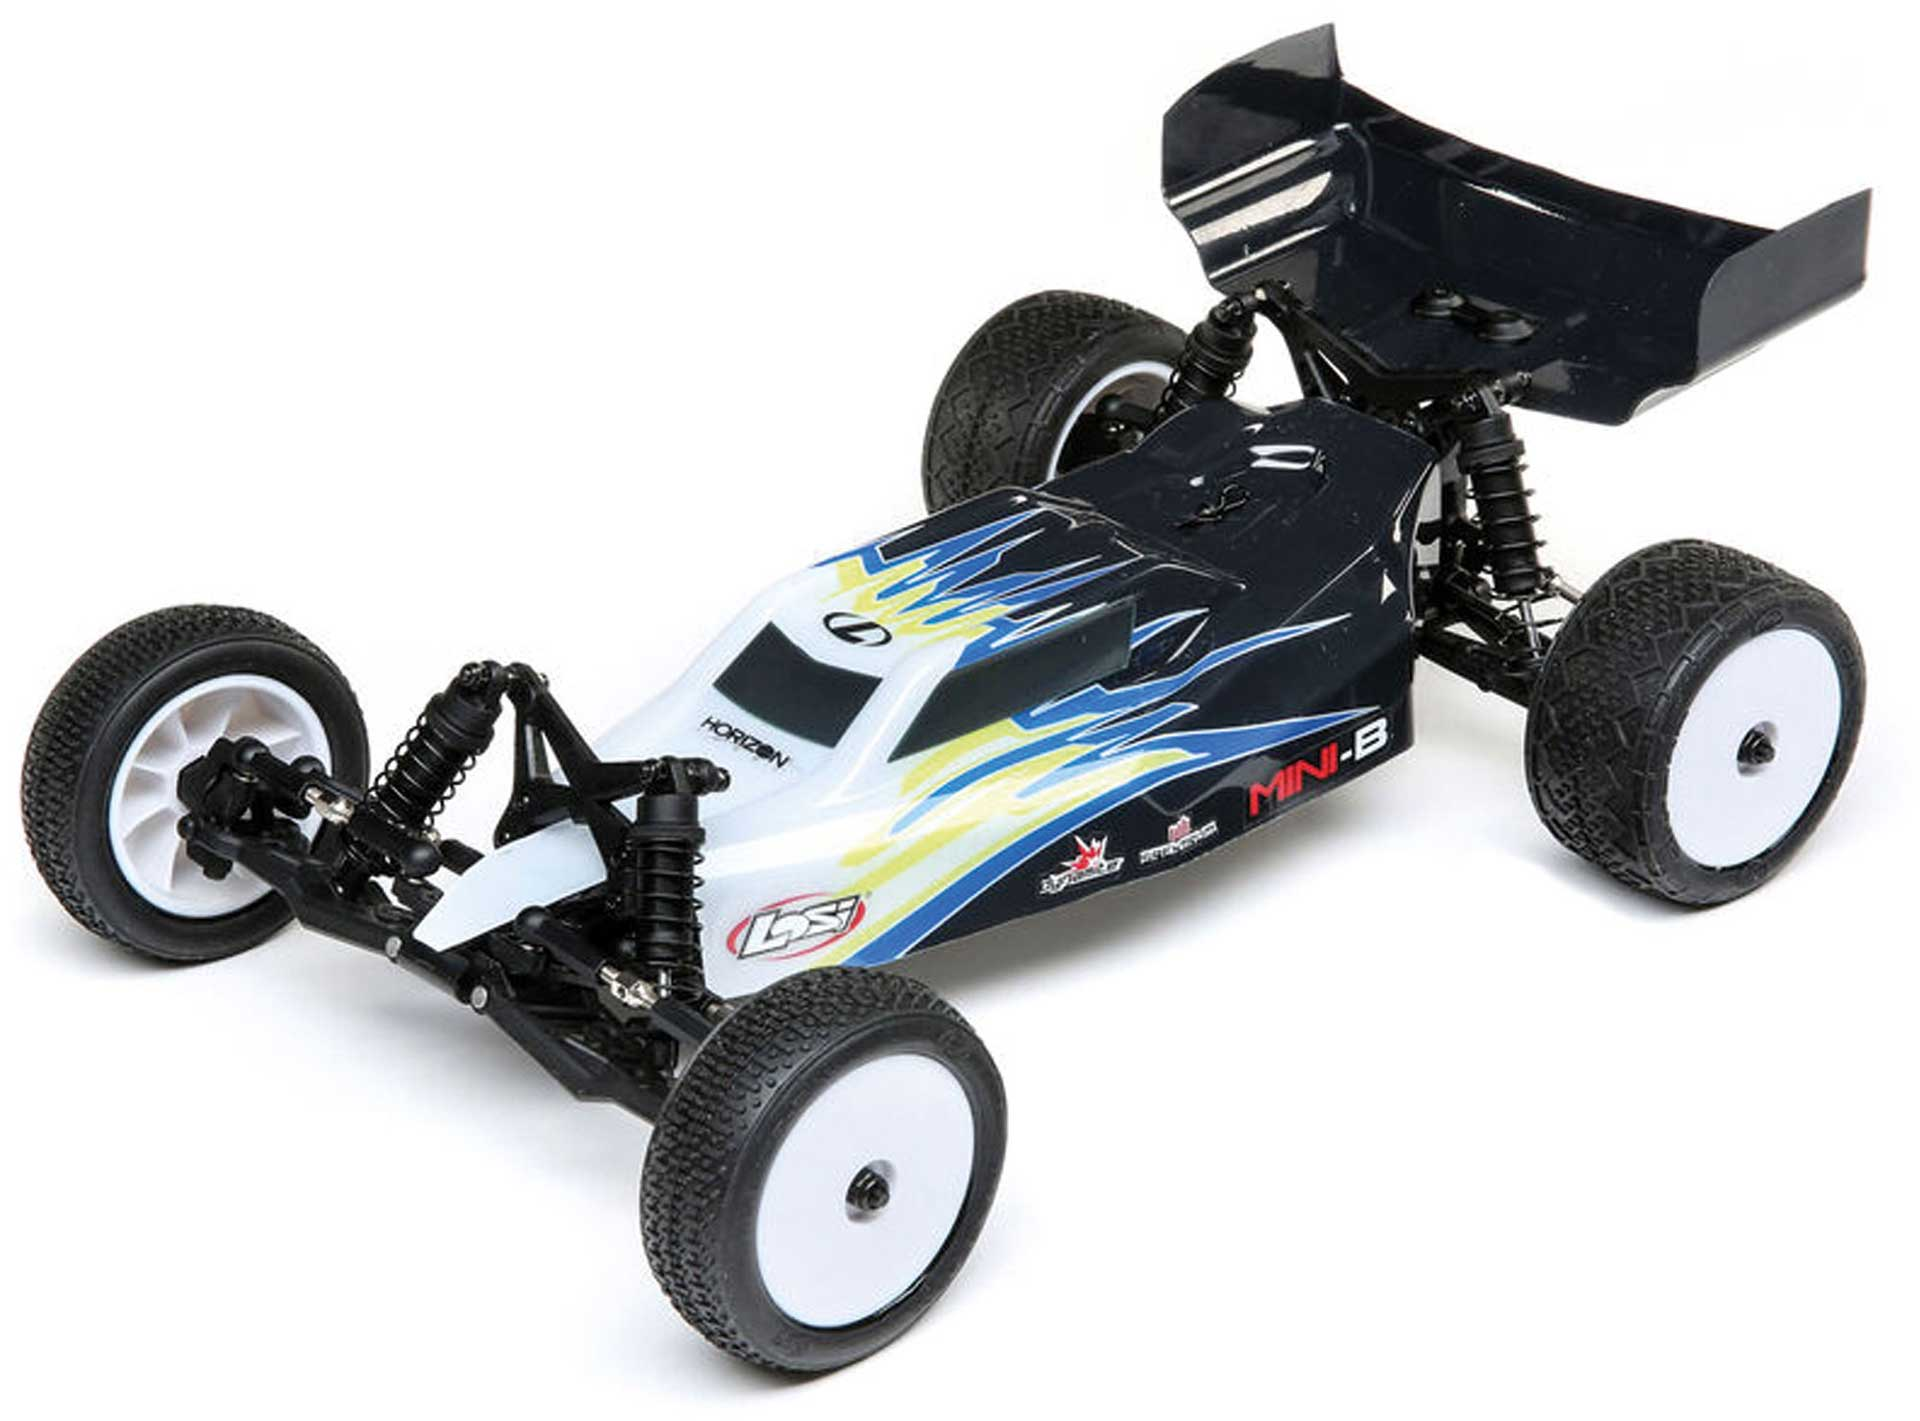 LOSI Mini-B Brushed RTR 1/16 2WD Buggy black/white